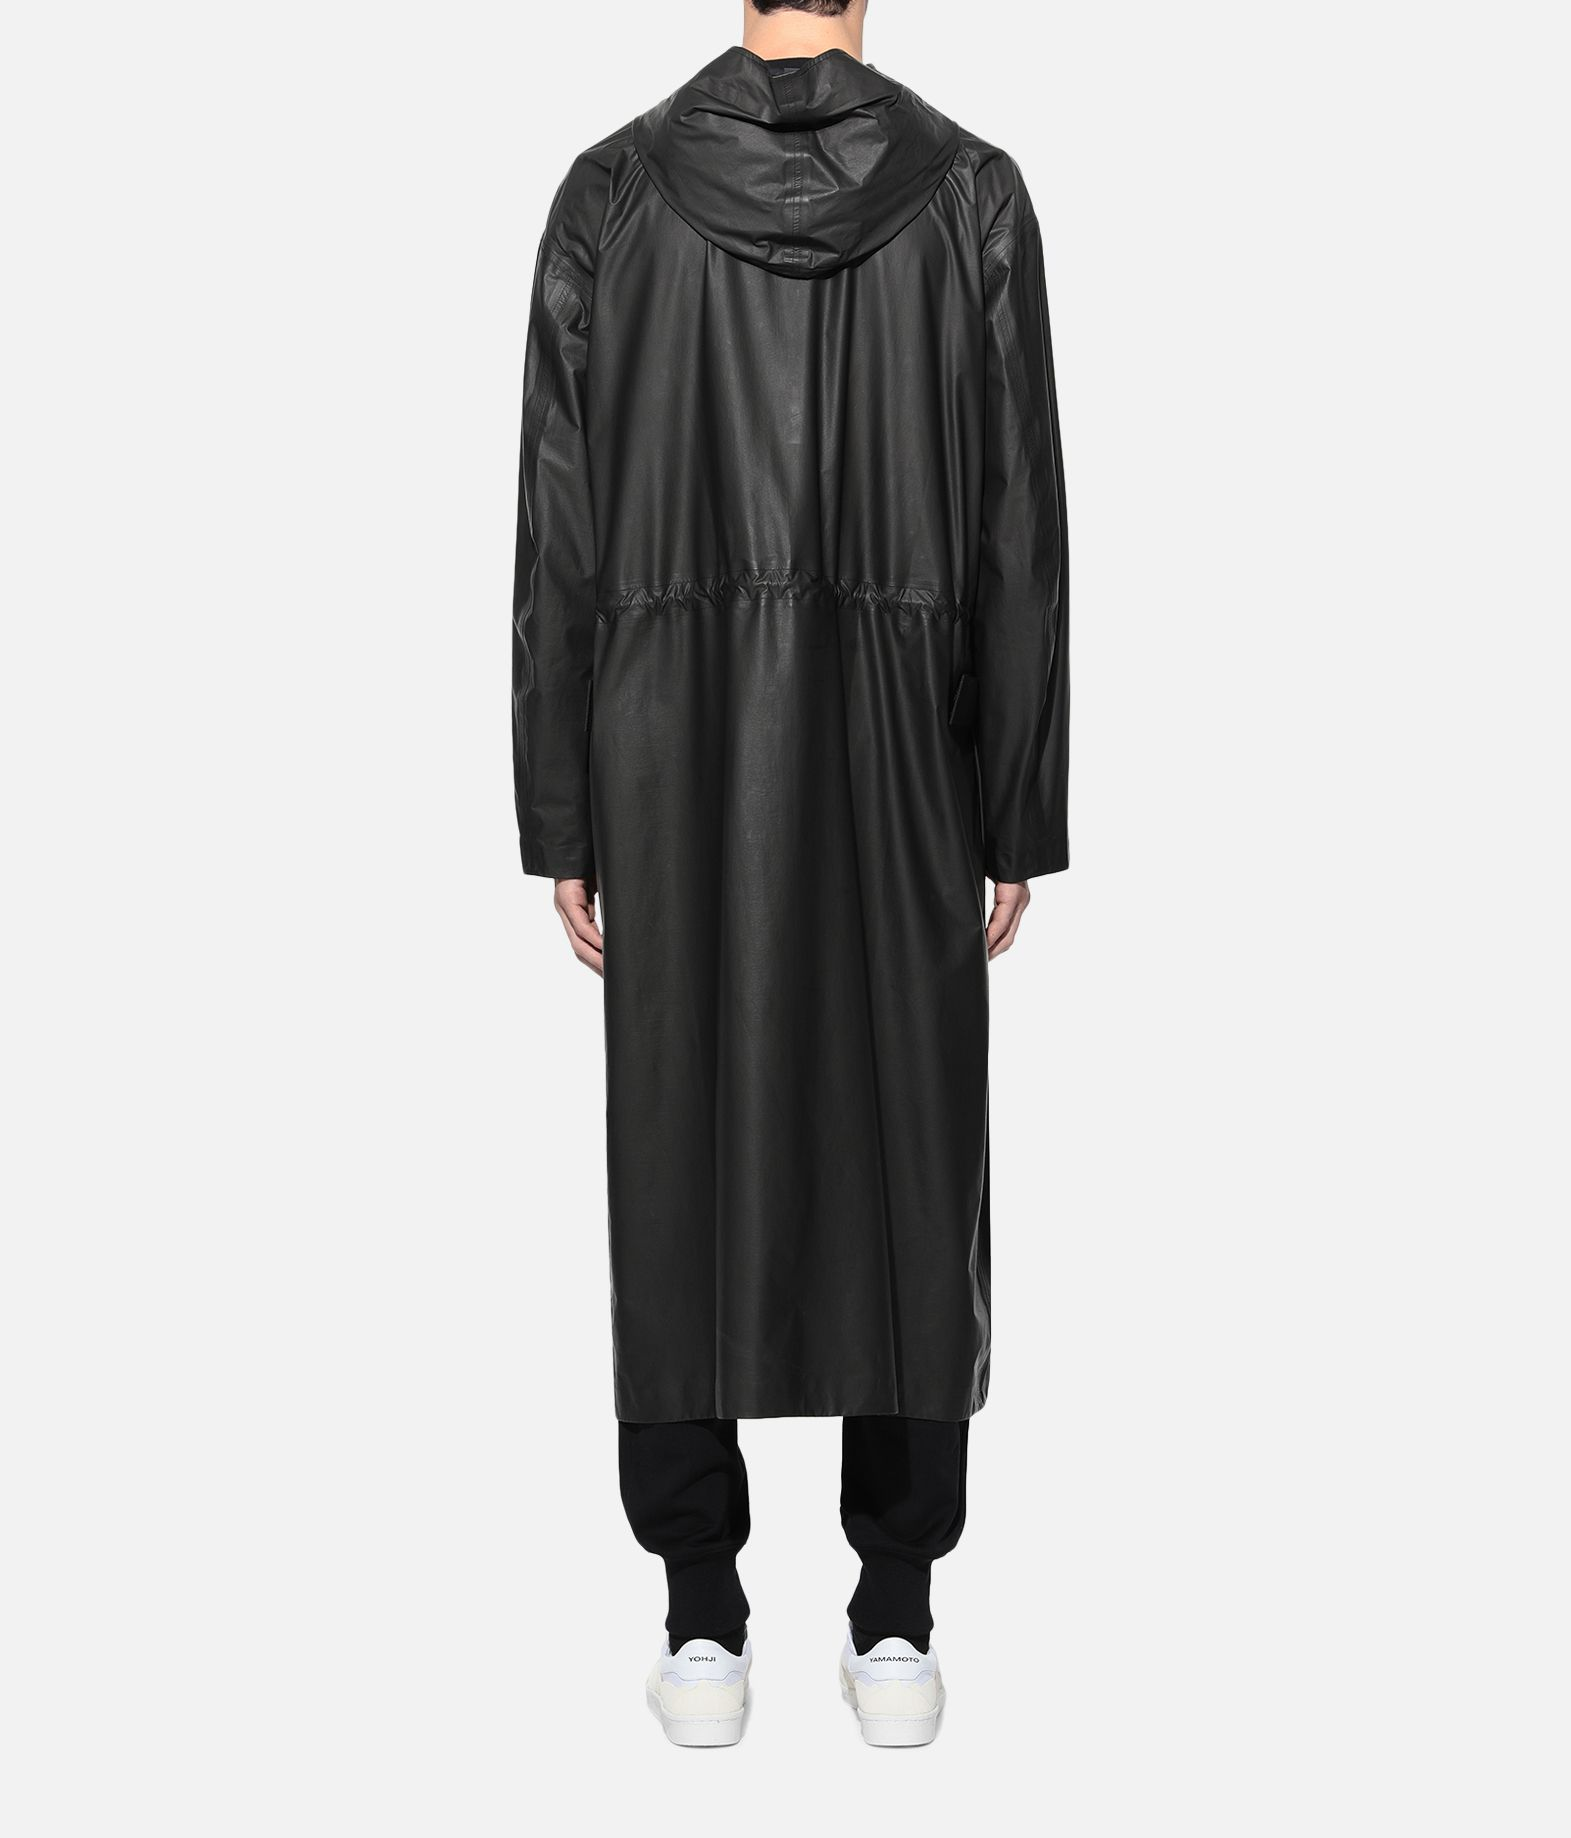 Y-3 Y-3 GORE-TEX Long Coat Raincoat Man d